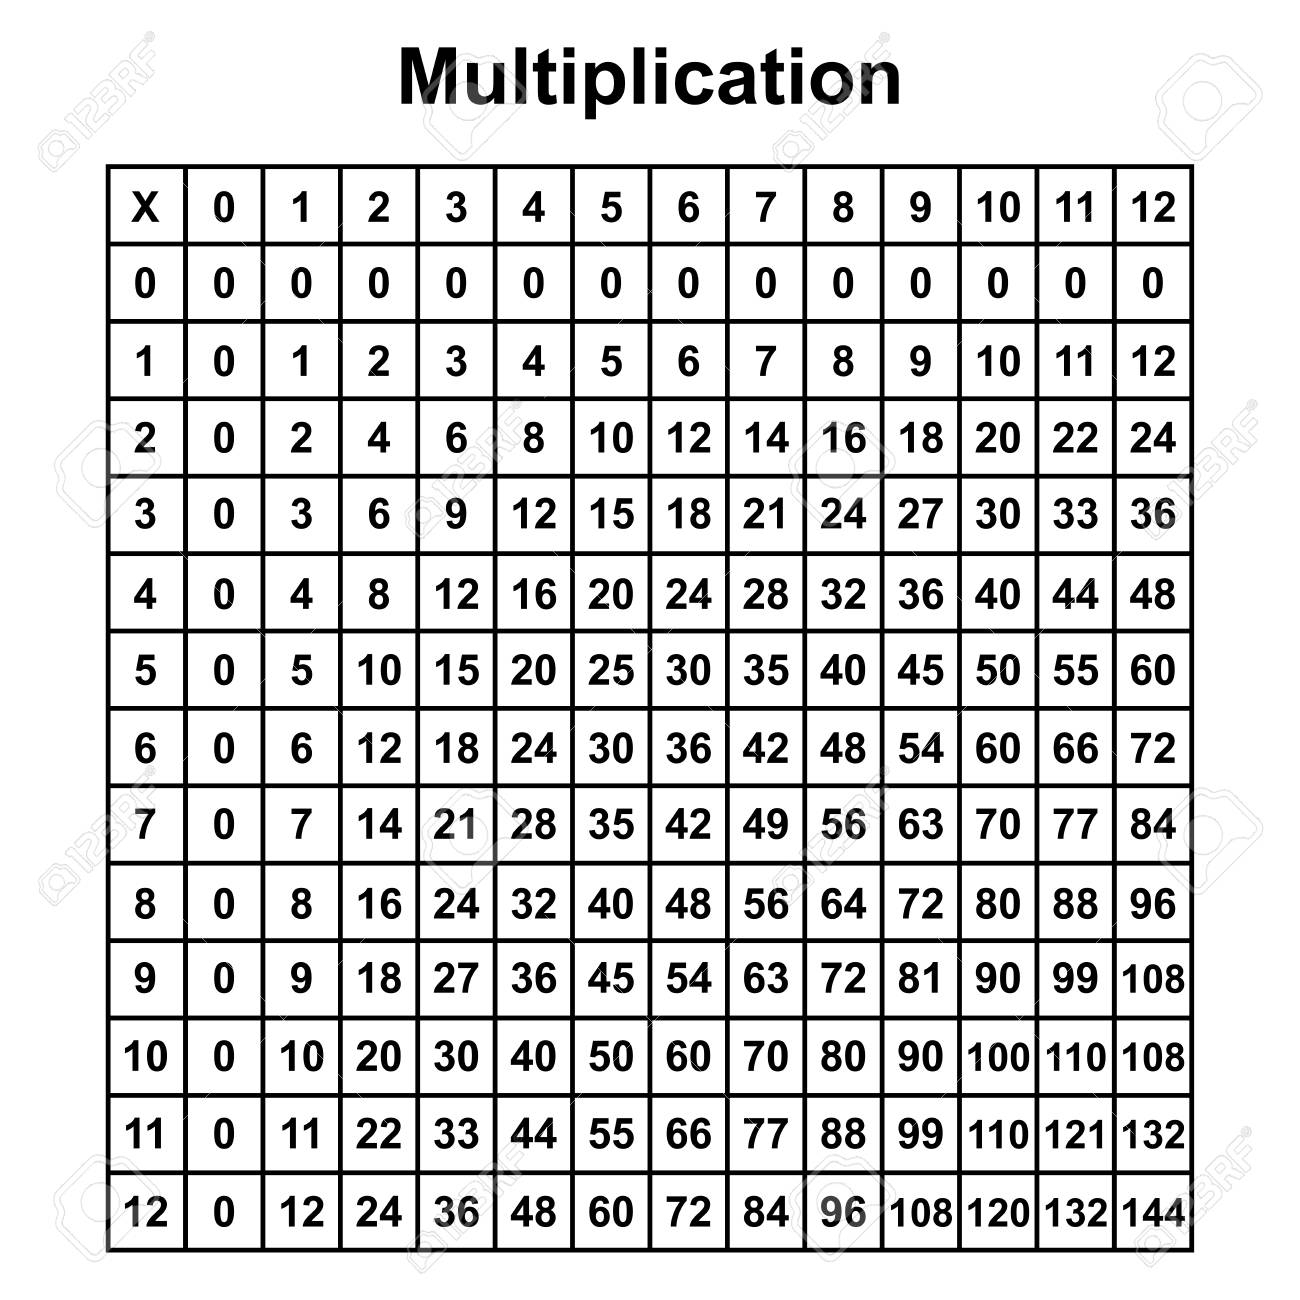 Multiplication Table Chart Or Multiplication Table Printable.. within Printable Multiplication Study Chart